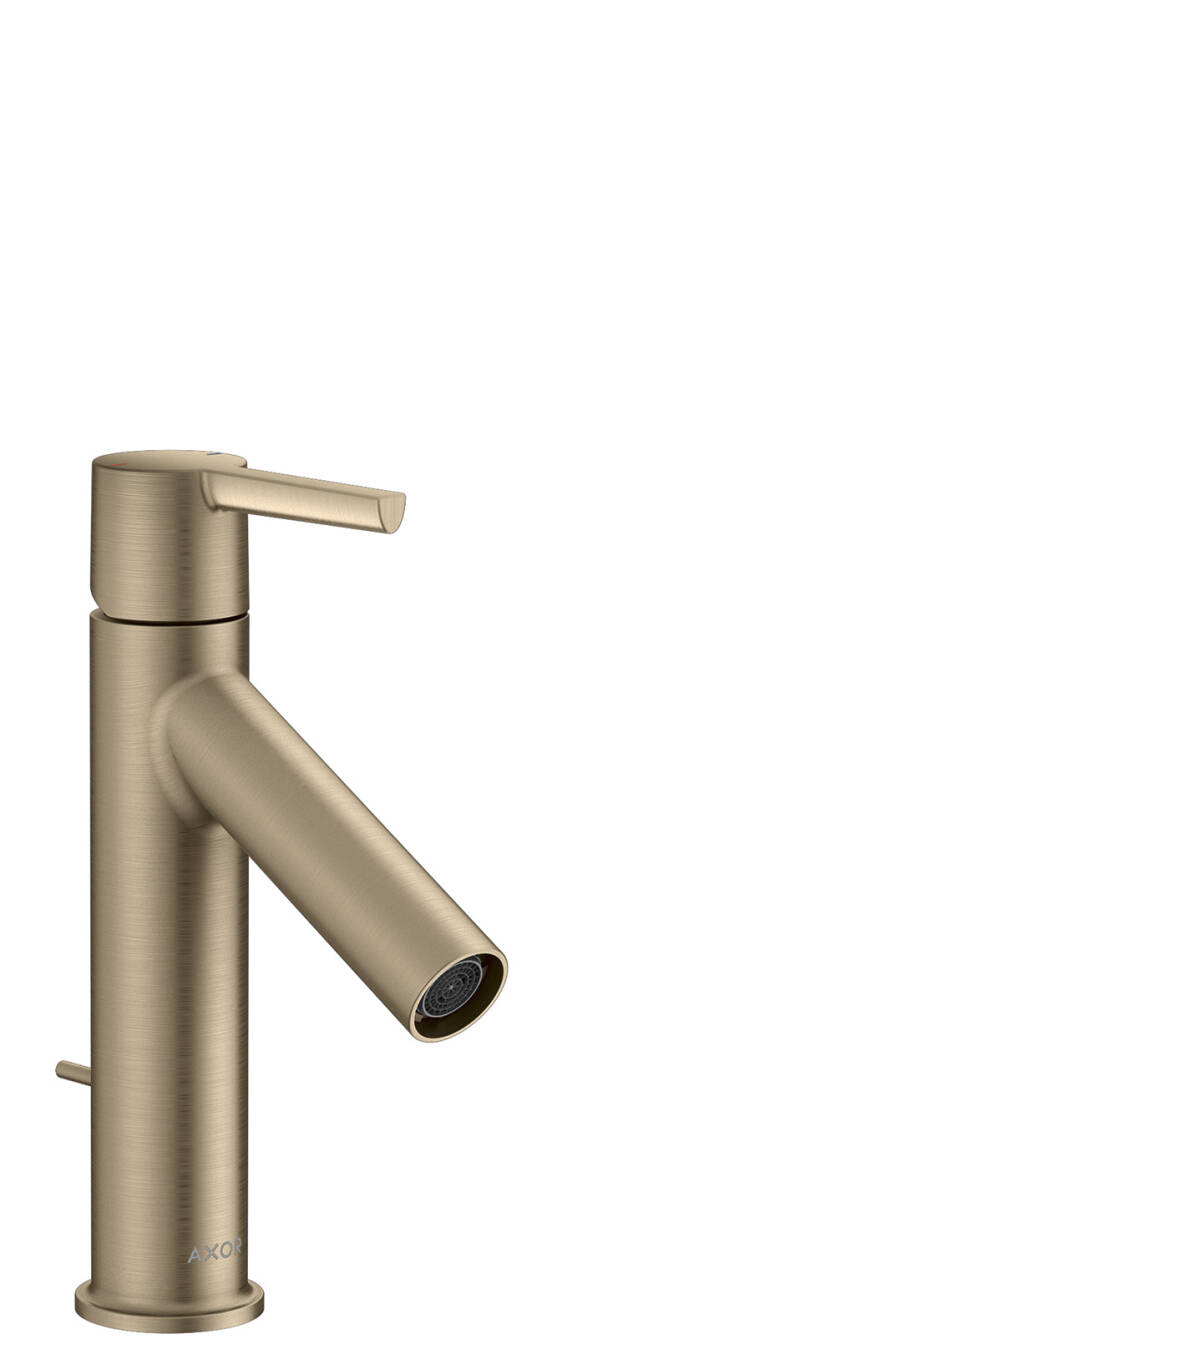 Single lever basin mixer 100 with lever handle and pop-up waste set, Brushed Nickel, 10001820